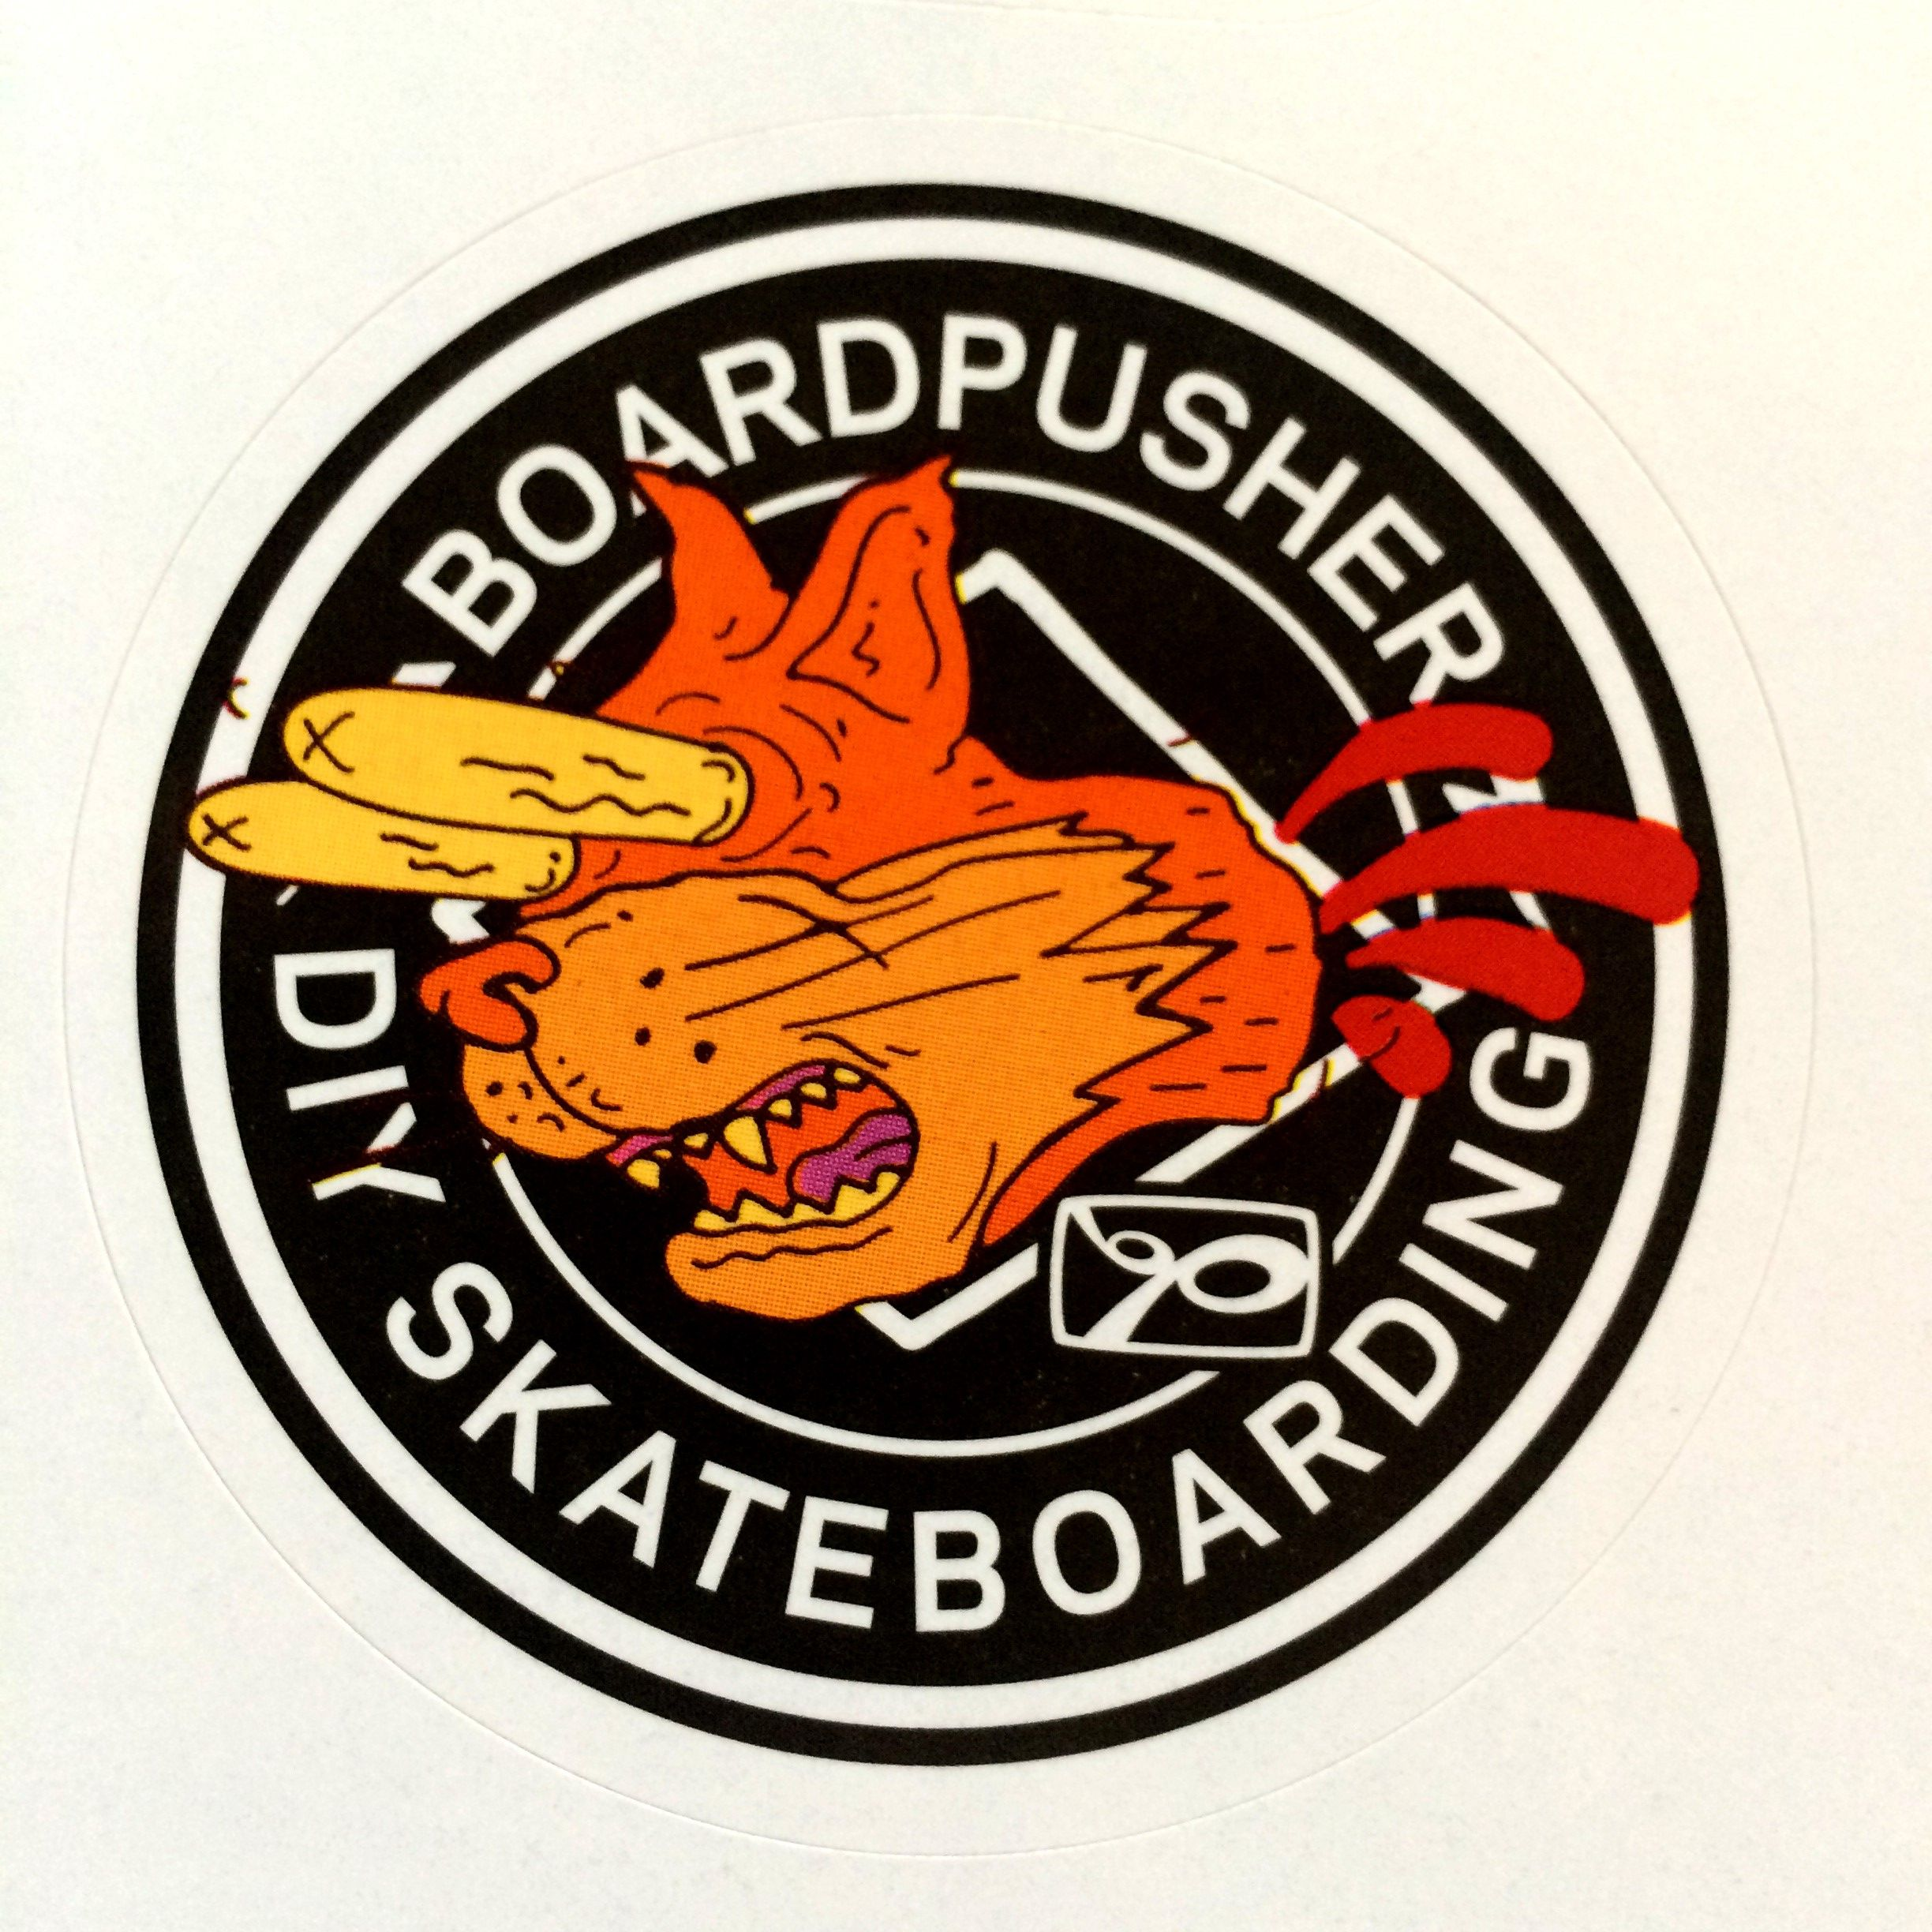 Go pick up the latest thrasher magazine and get this exclusive www boardpusher com custom skateboards sticker